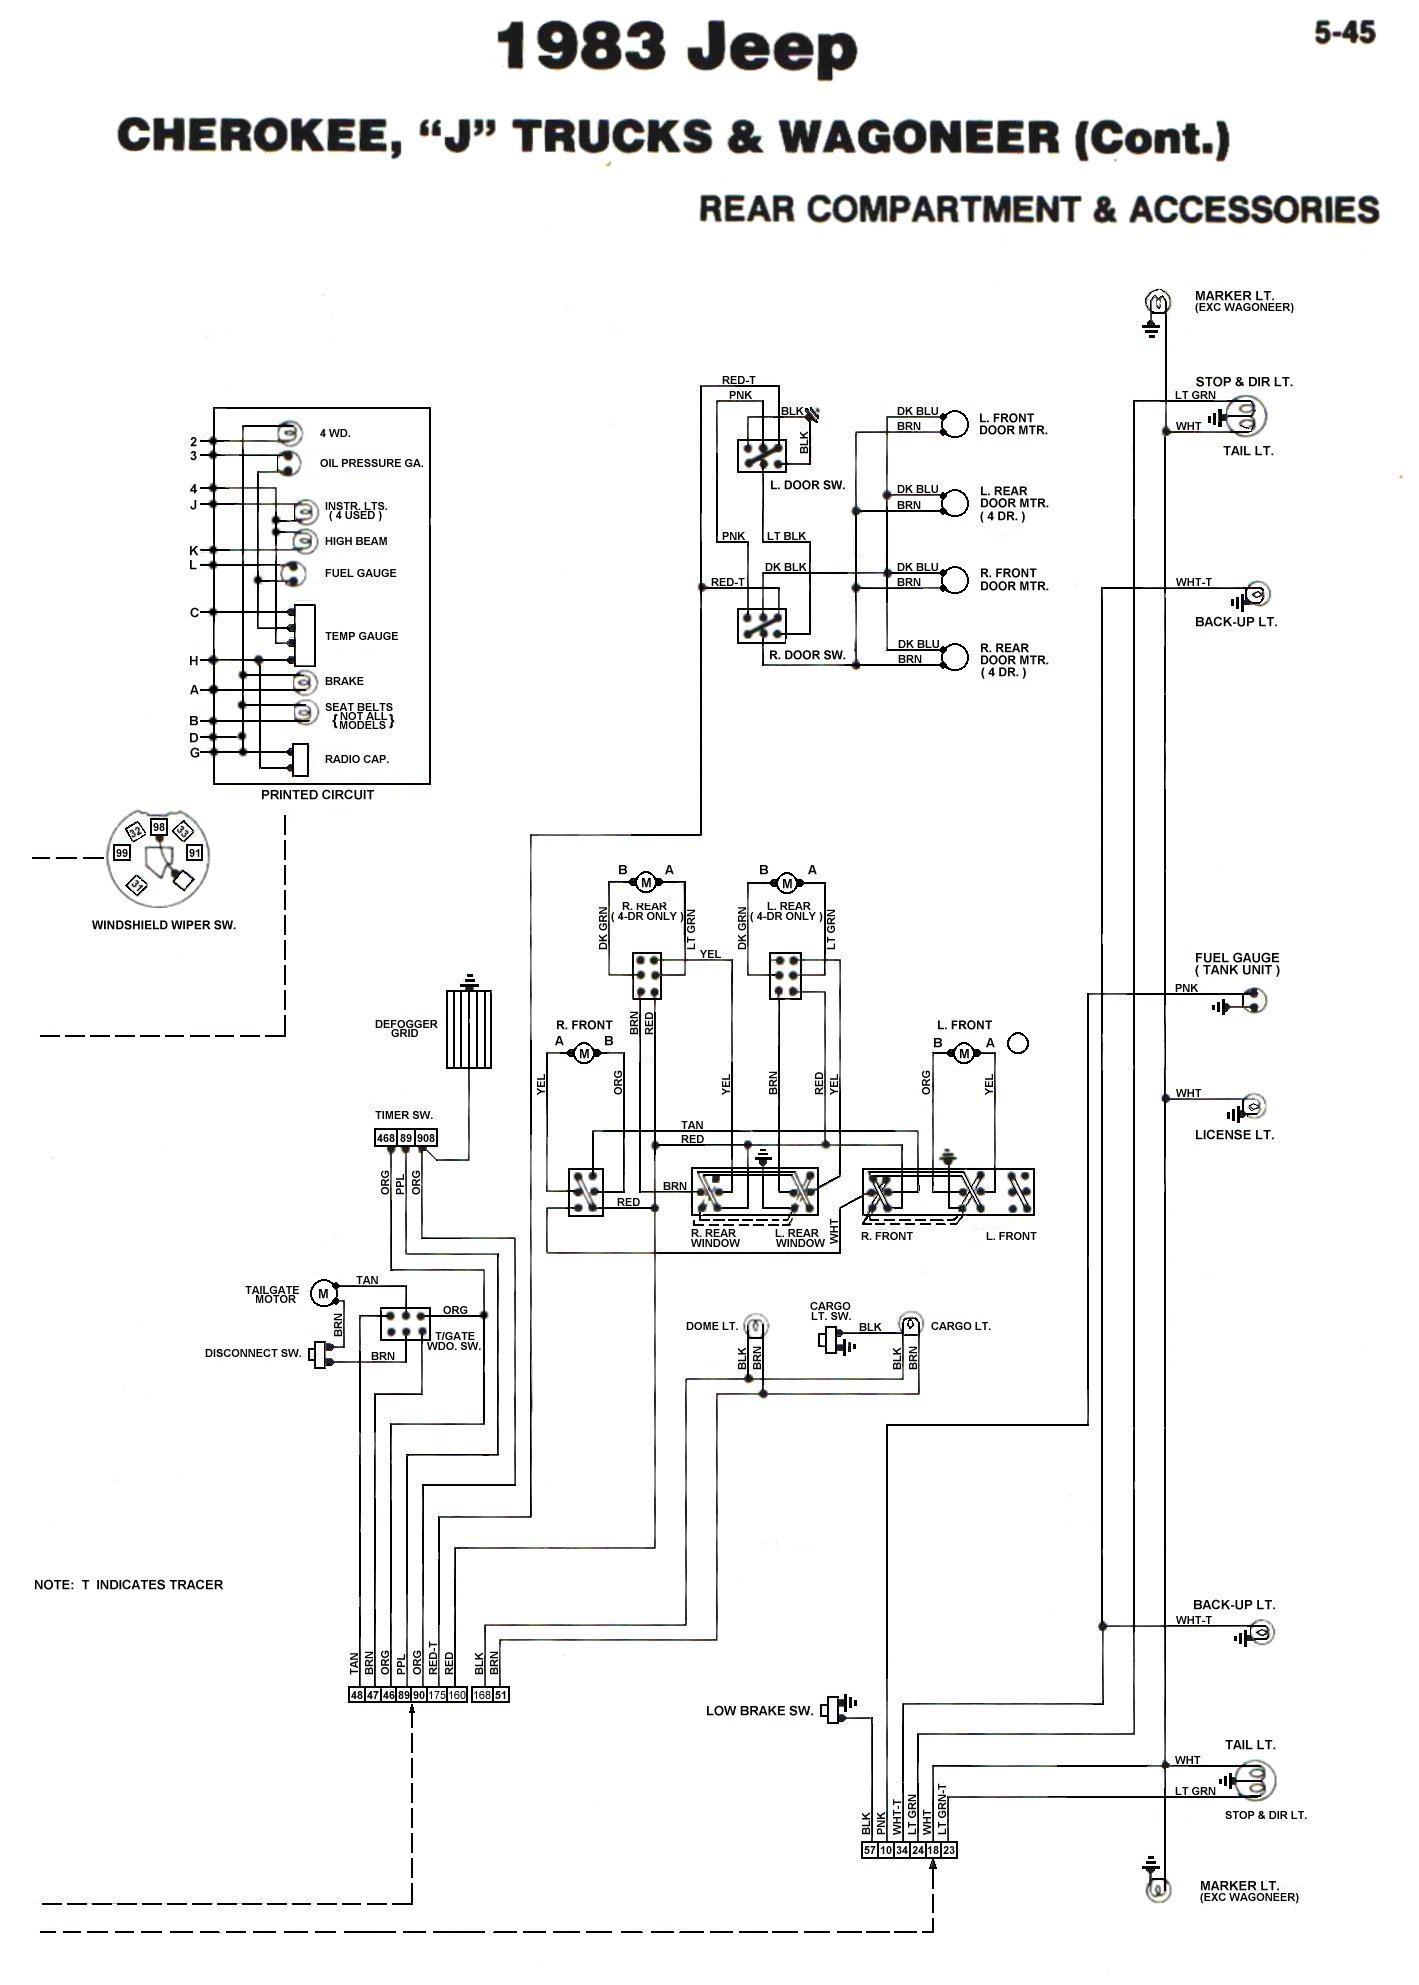 Fisher Plow Wiring Diagram http://divingaccessorysystems.com/ok-fisher-plow-lights-wiring-diagram/